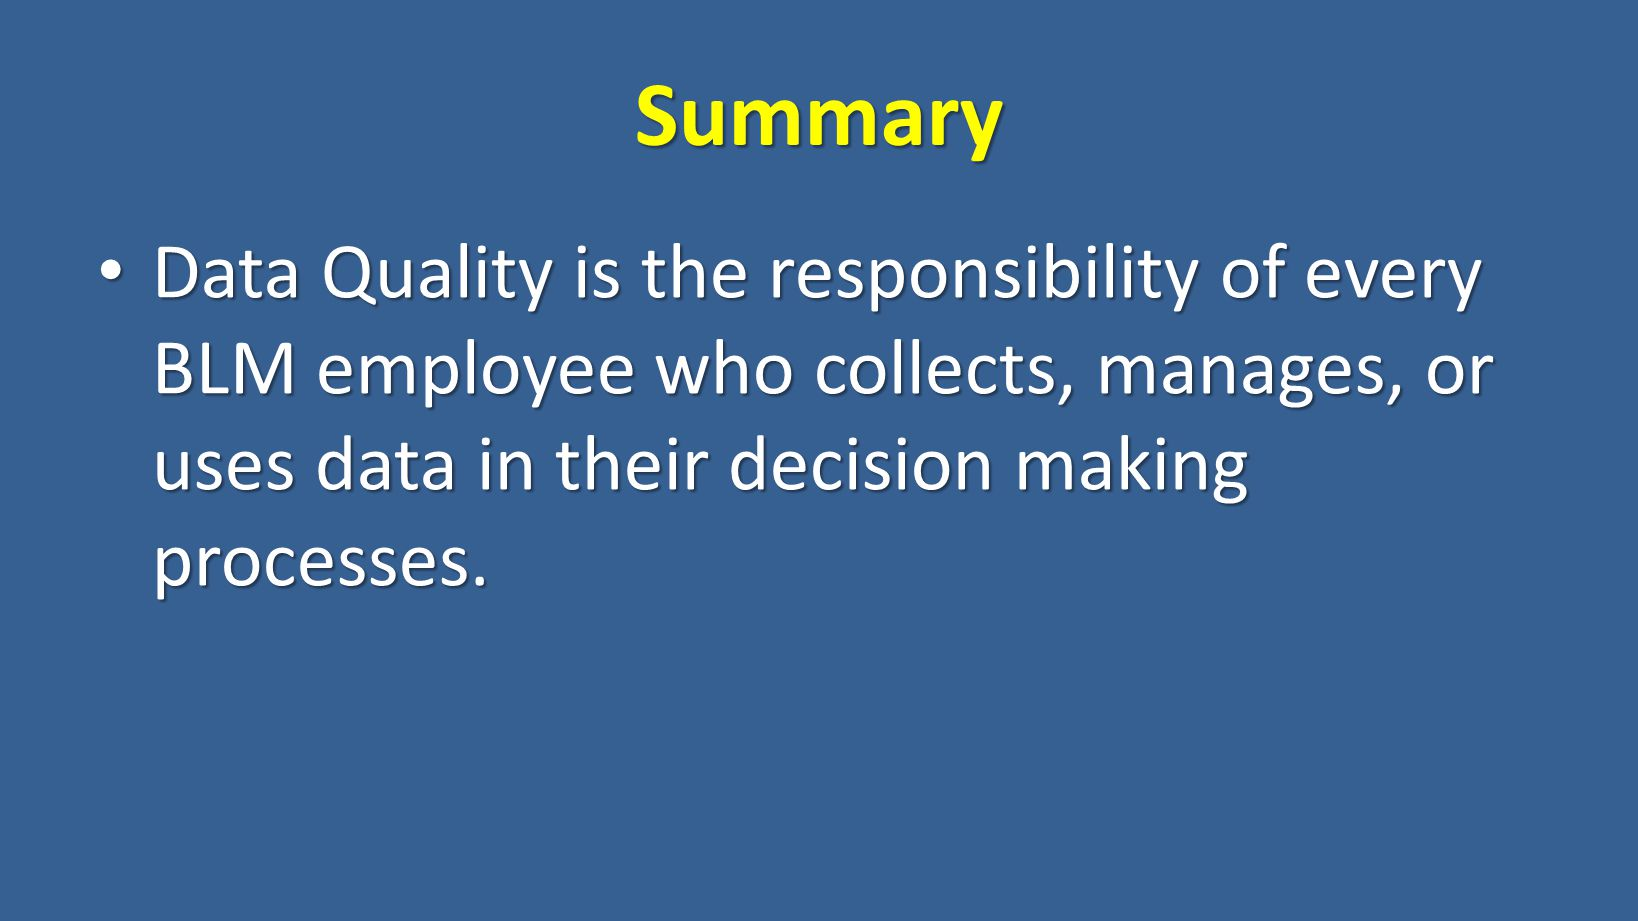 Summary Data Quality is the responsibility of every BLM employee who collects, manages, or uses data in their decision making processes.